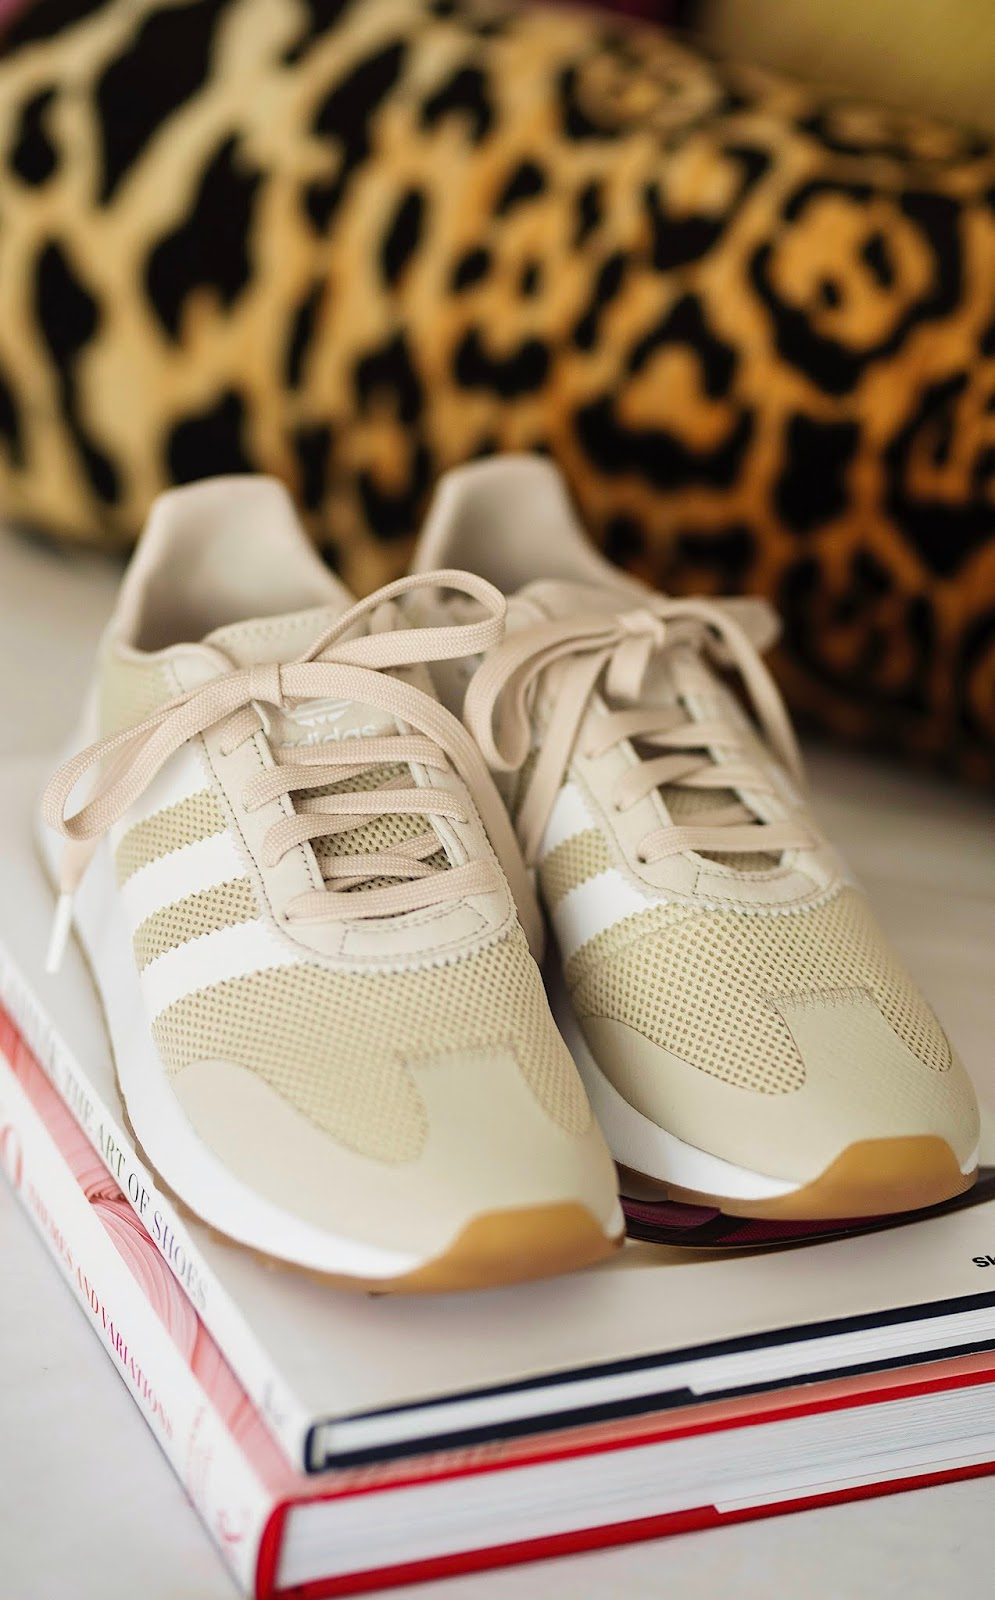 Adidas Flashback Sneaker - Something Delightful Blog